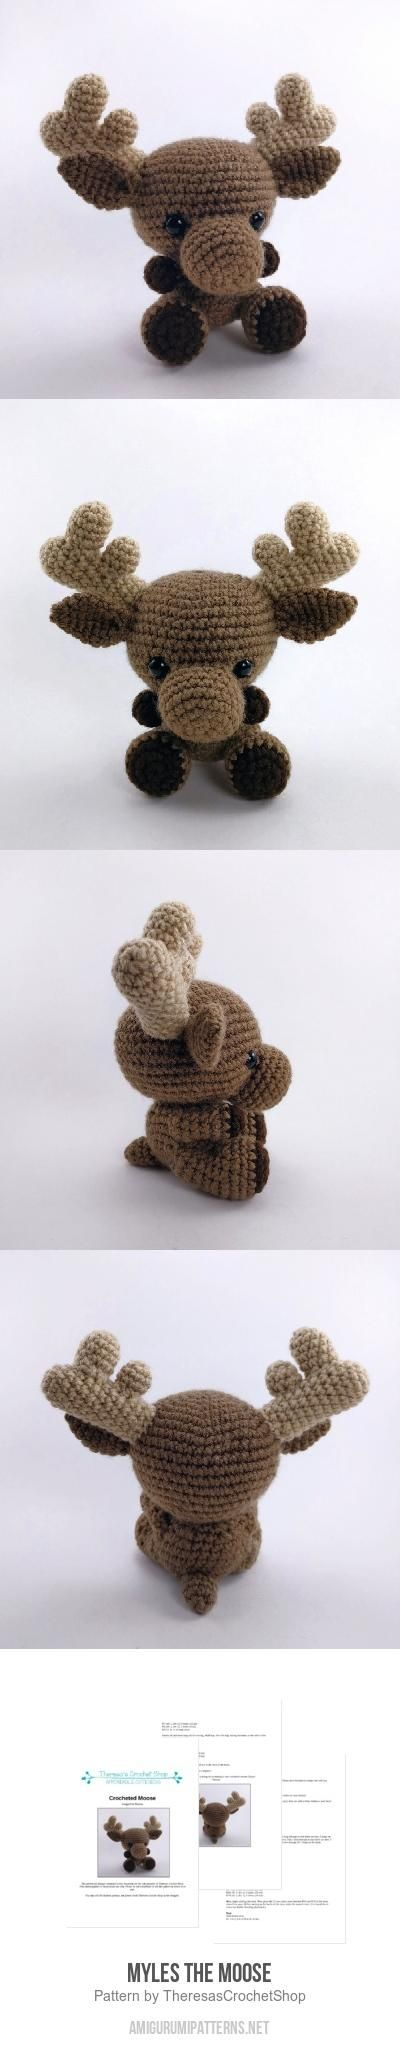 Myles the Moose amigurumi pattern